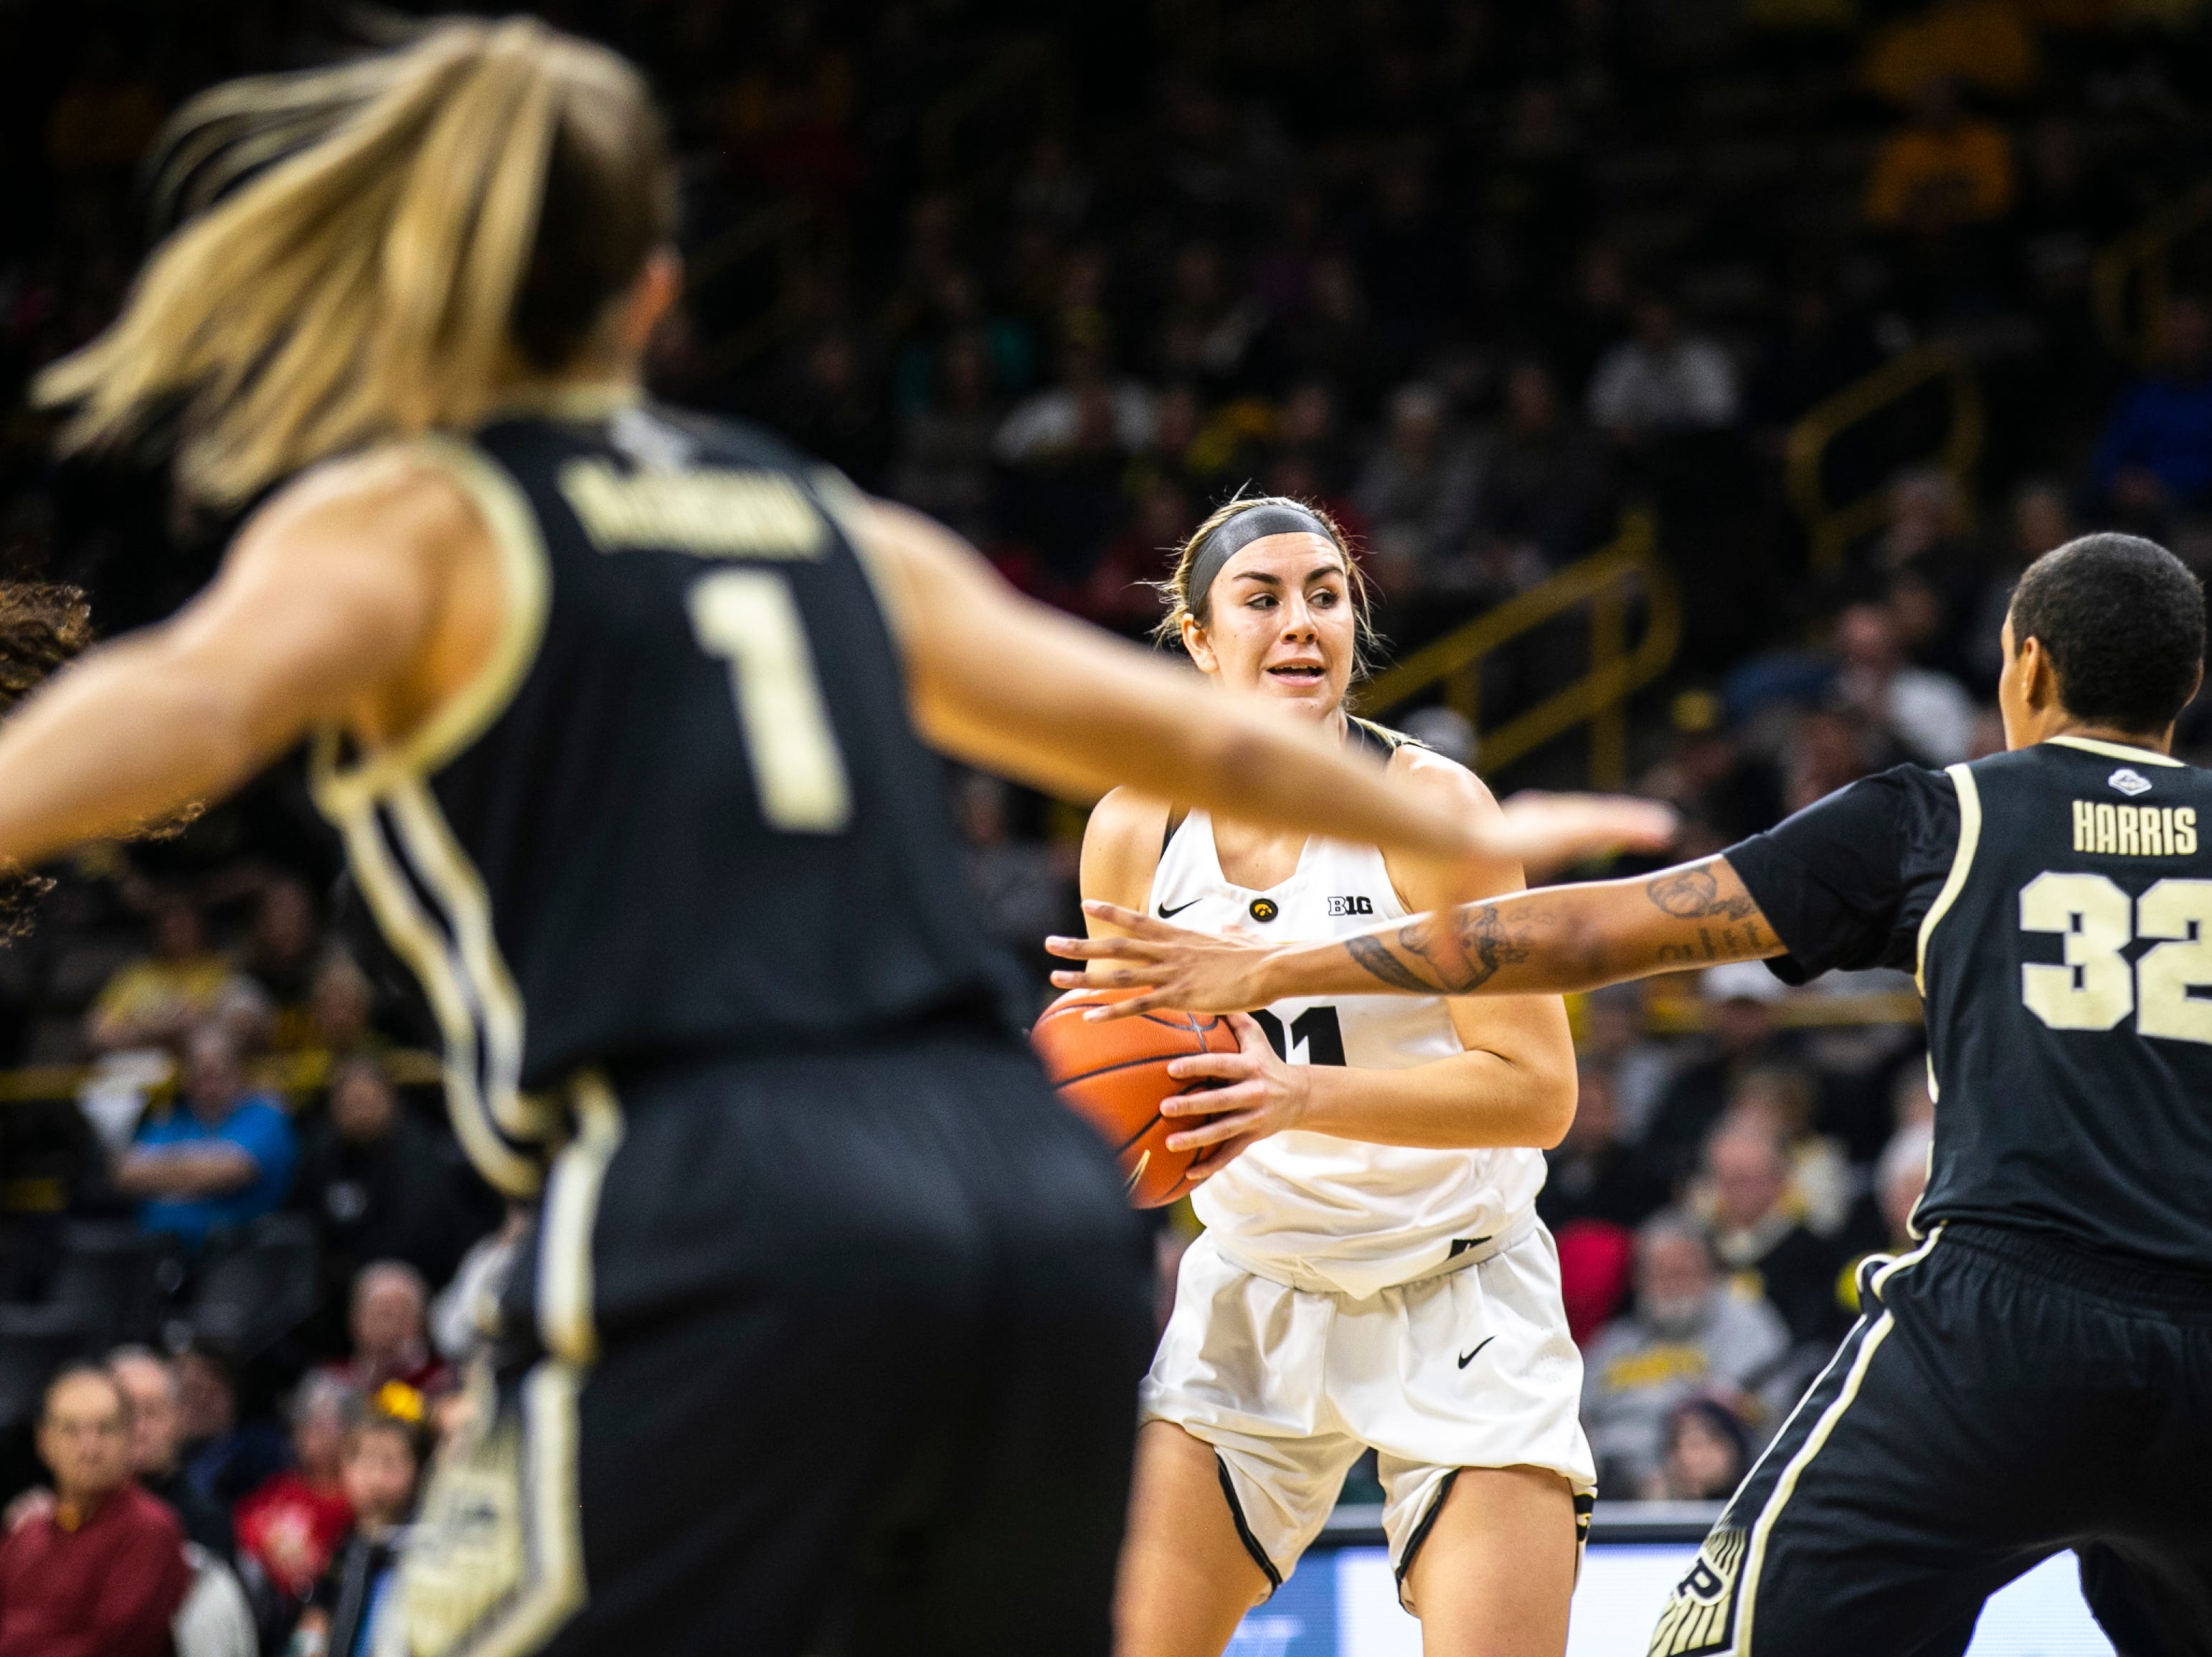 Iowa forward Hannah Stewart (21) looks to pass during a NCAA Big Ten Conference women's basketball game on Sunday, Jan. 27, 2019, at Carver-Hawkeye Arena in Iowa City, Iowa.